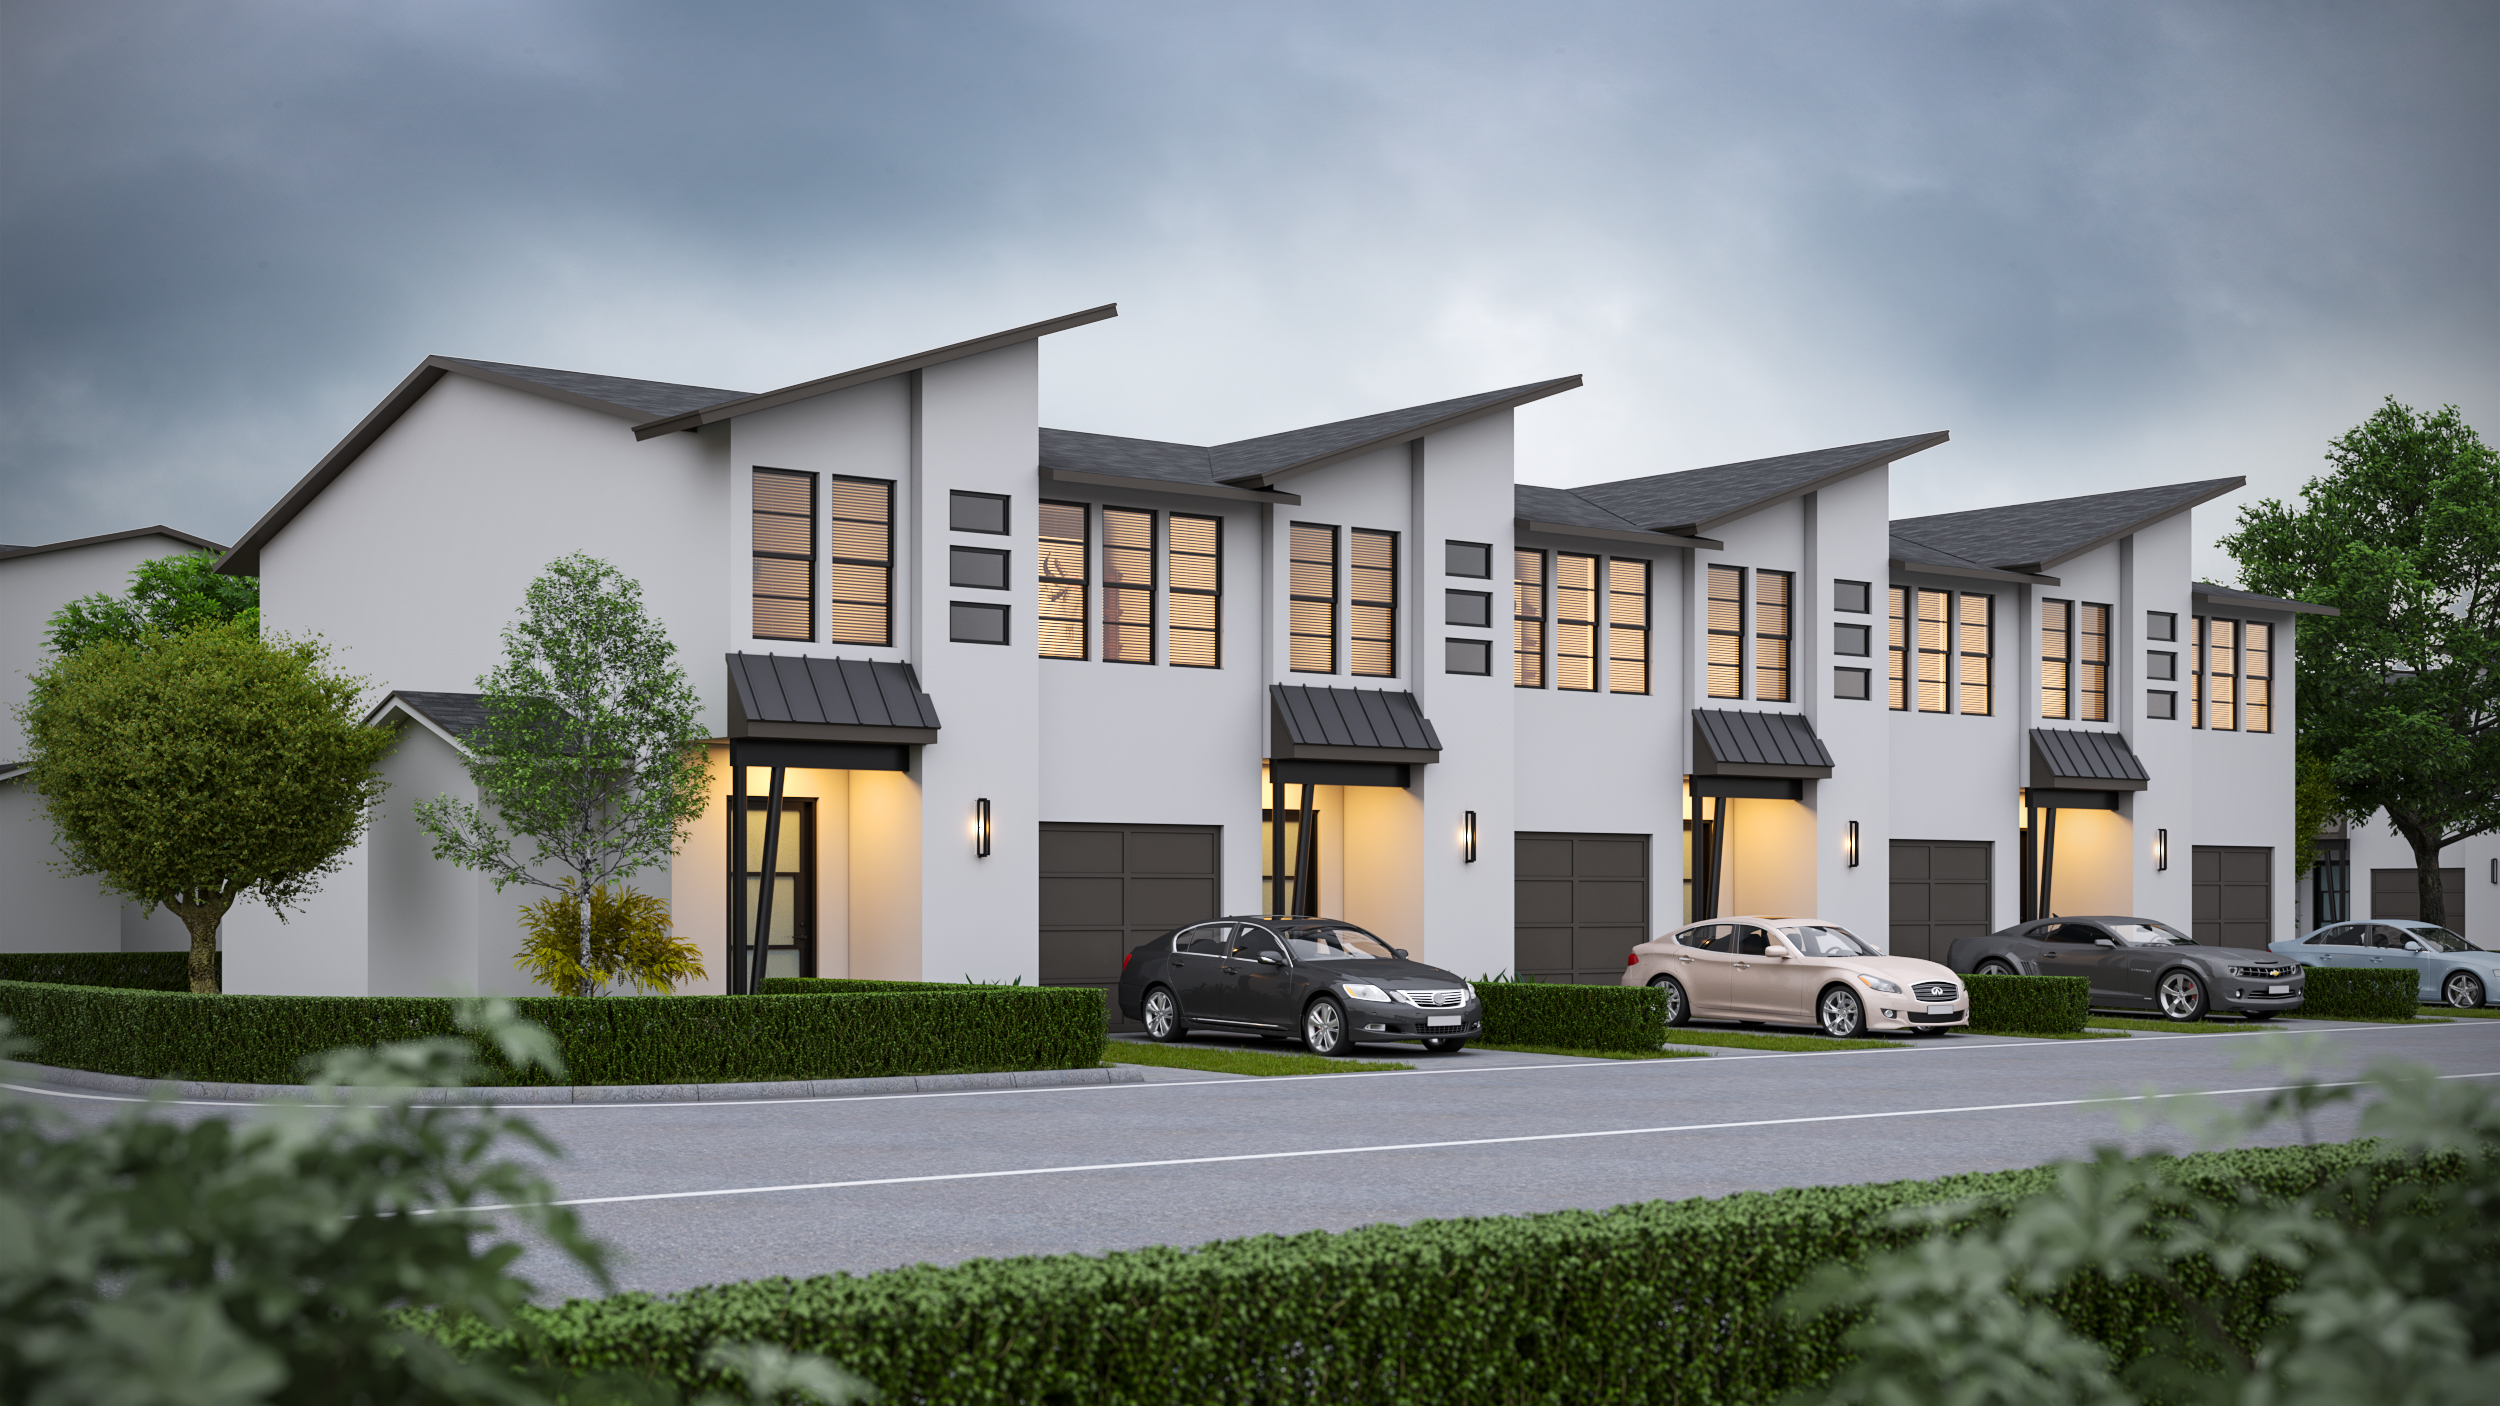 31 South Townhomes - 32 Unit Upscale Townhomes